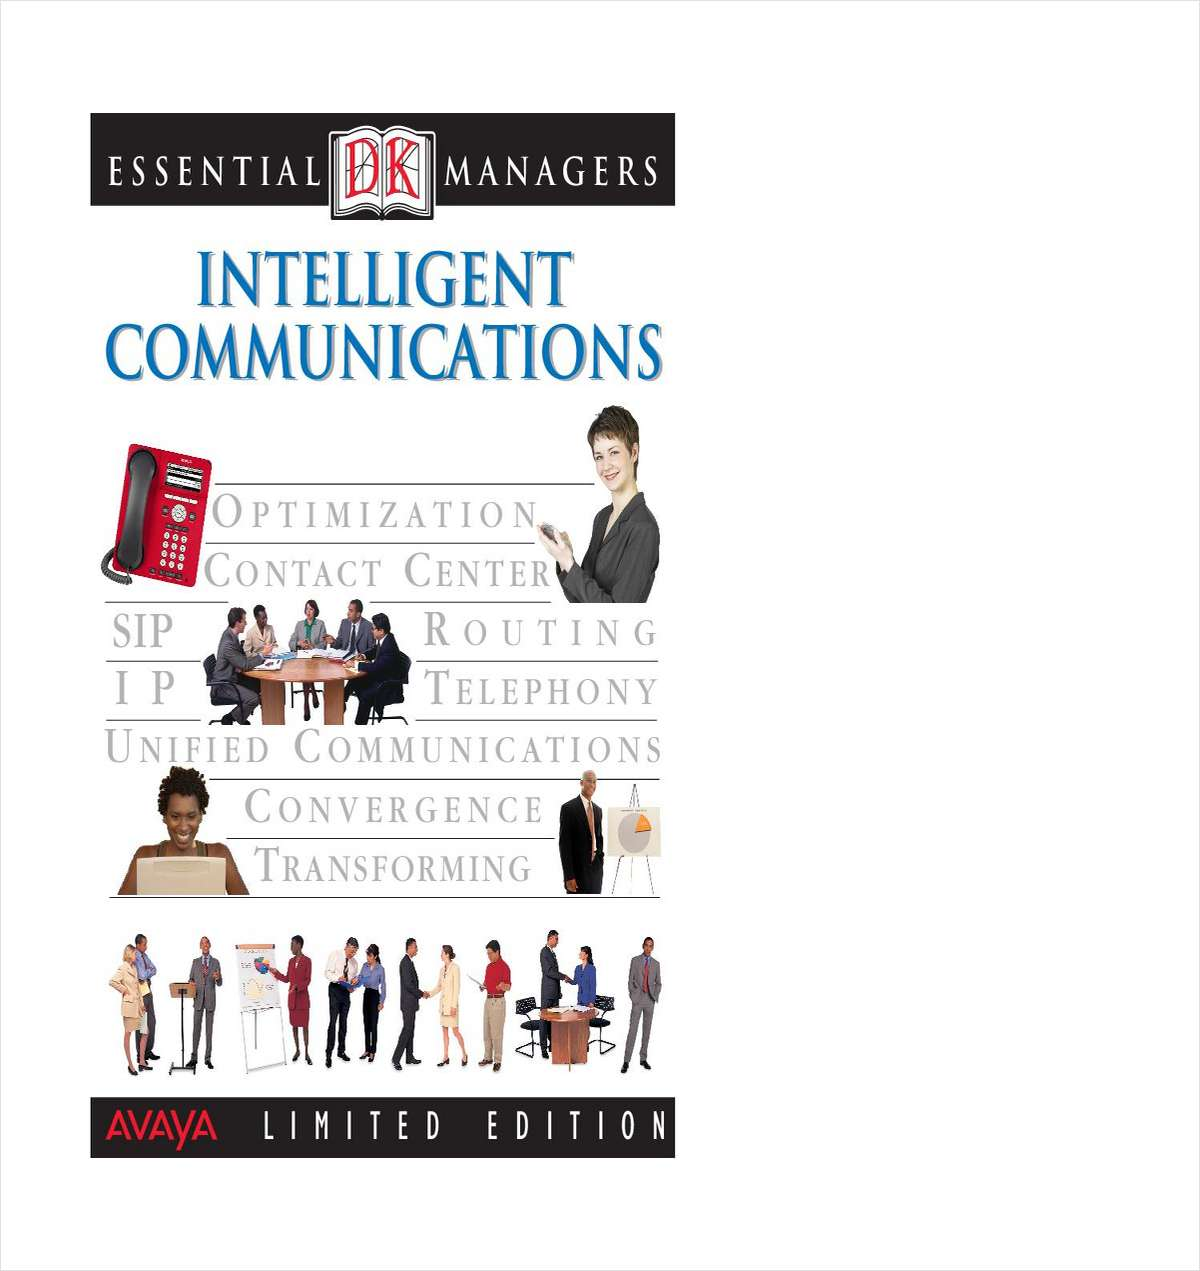 Essential Managers Guide for Intelligent Communications